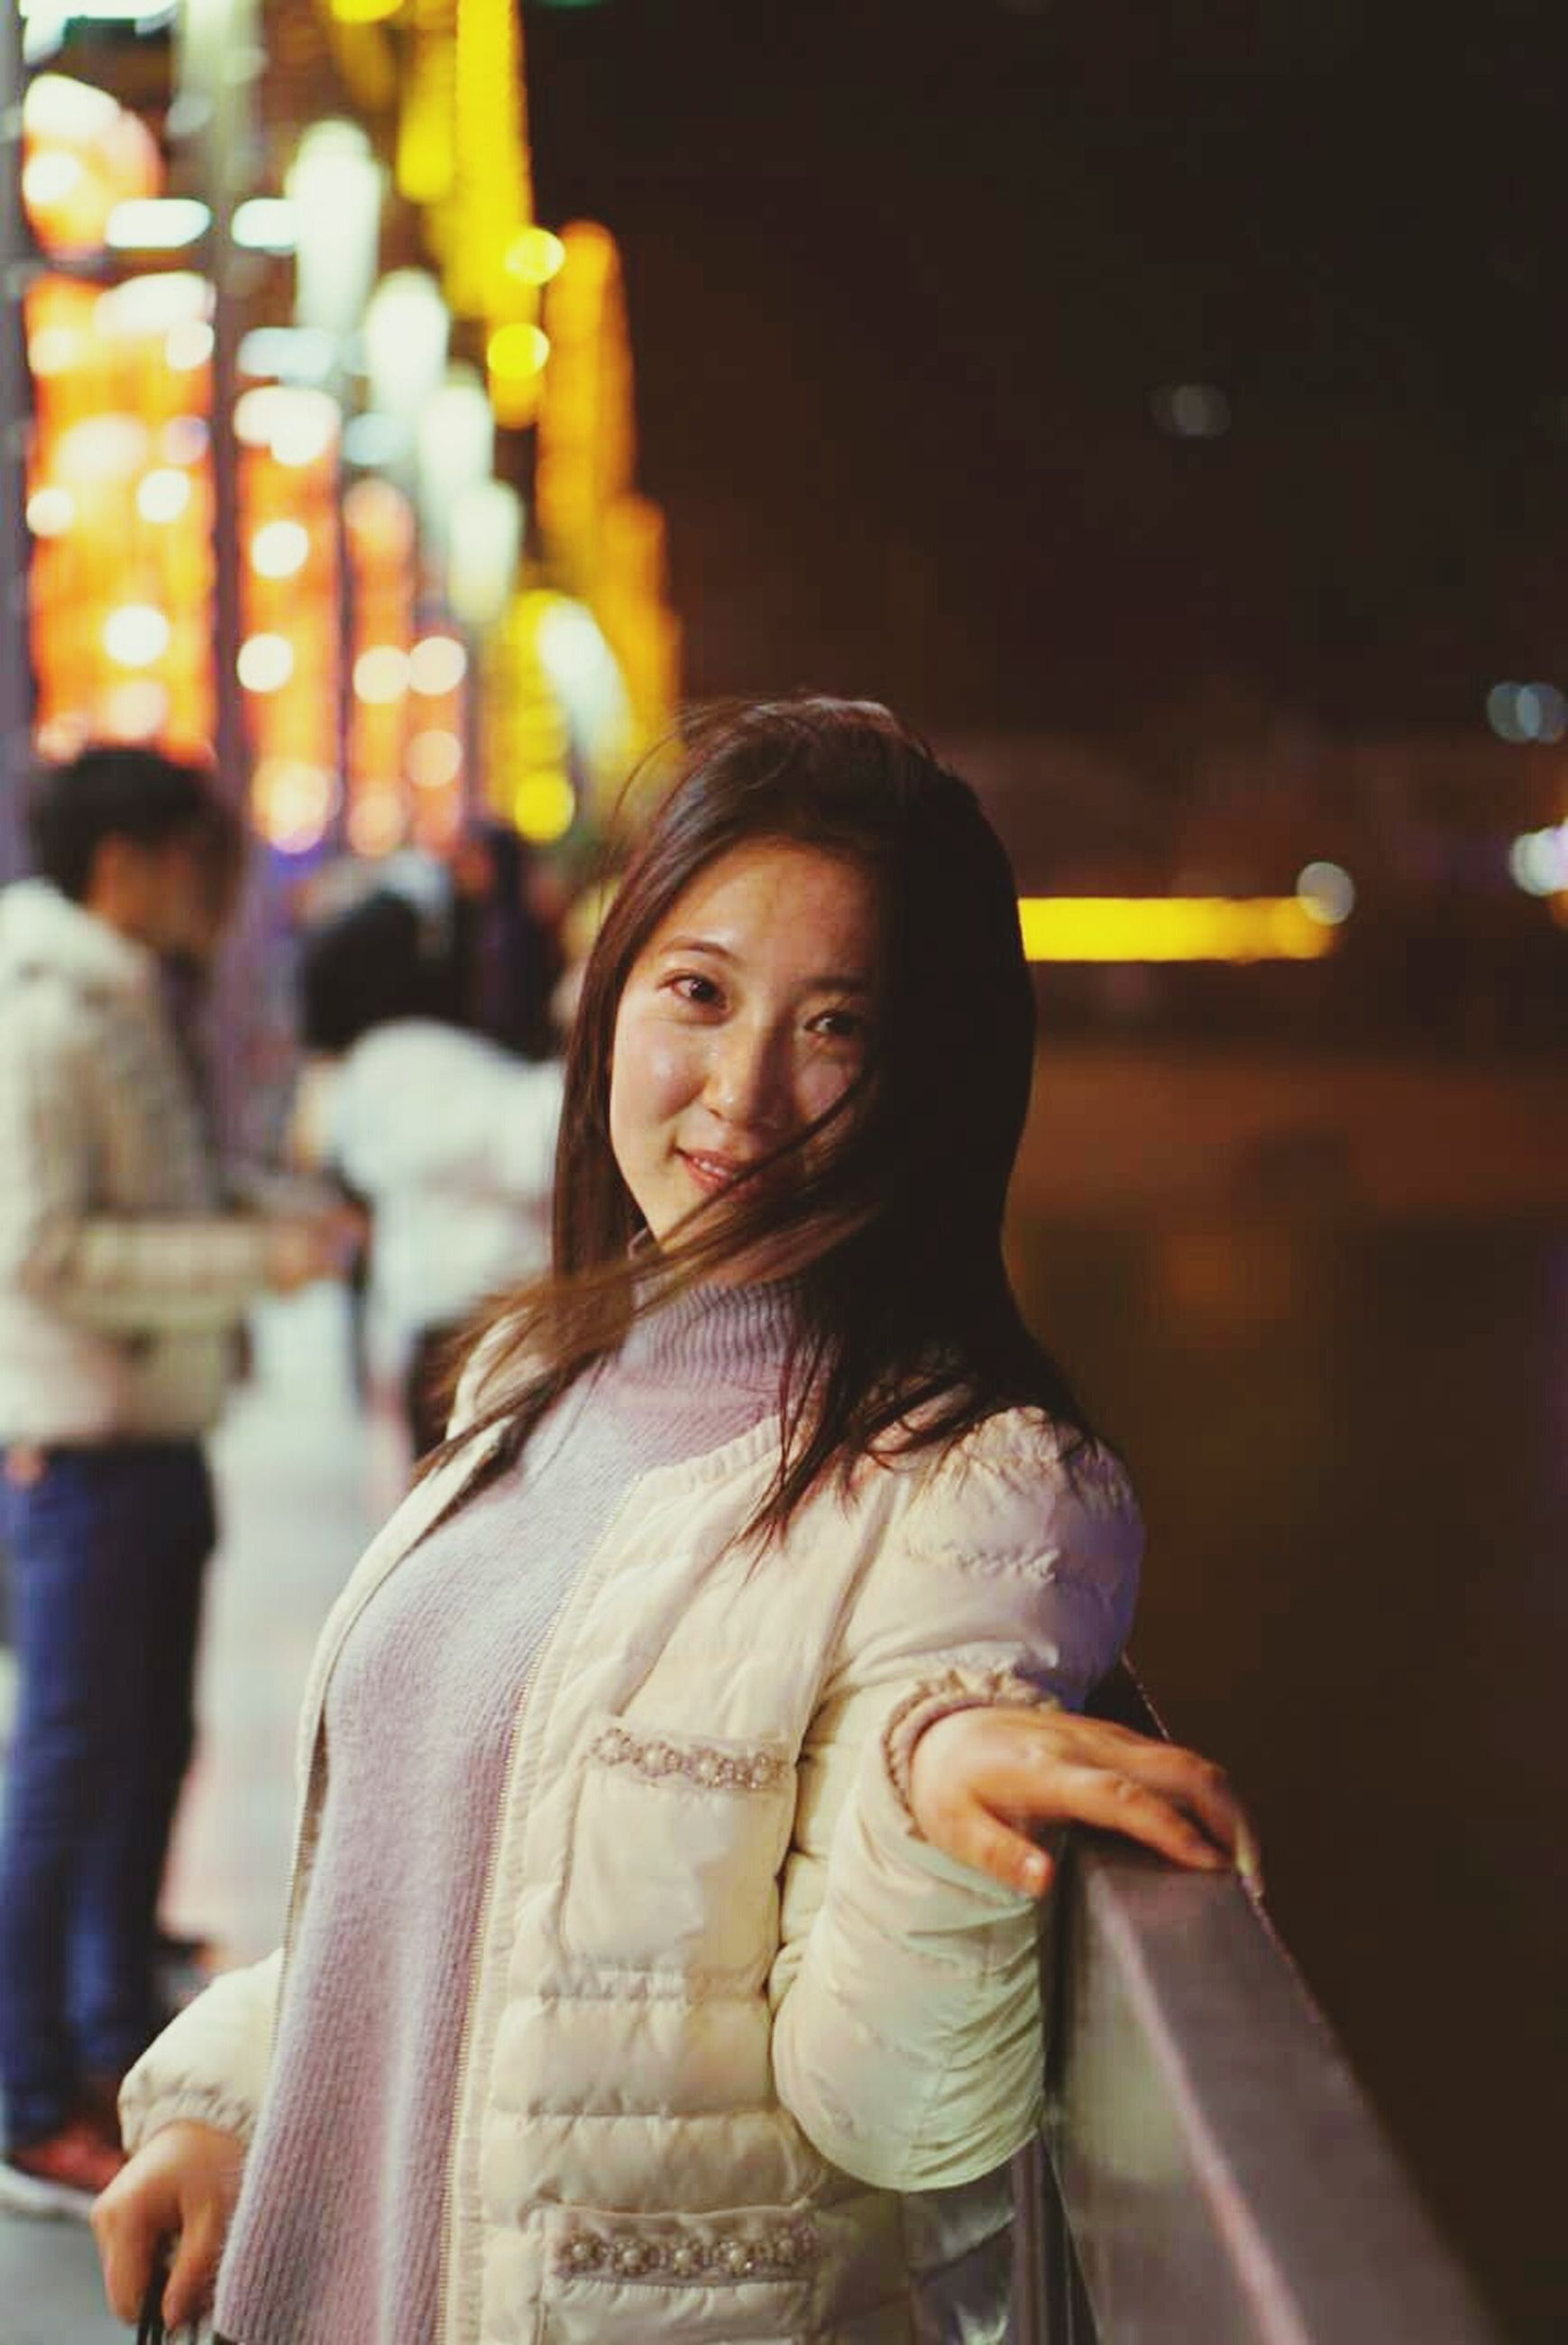 lifestyles, young adult, person, casual clothing, focus on foreground, front view, leisure activity, looking at camera, portrait, illuminated, waist up, night, standing, indoors, three quarter length, young women, headshot, smiling